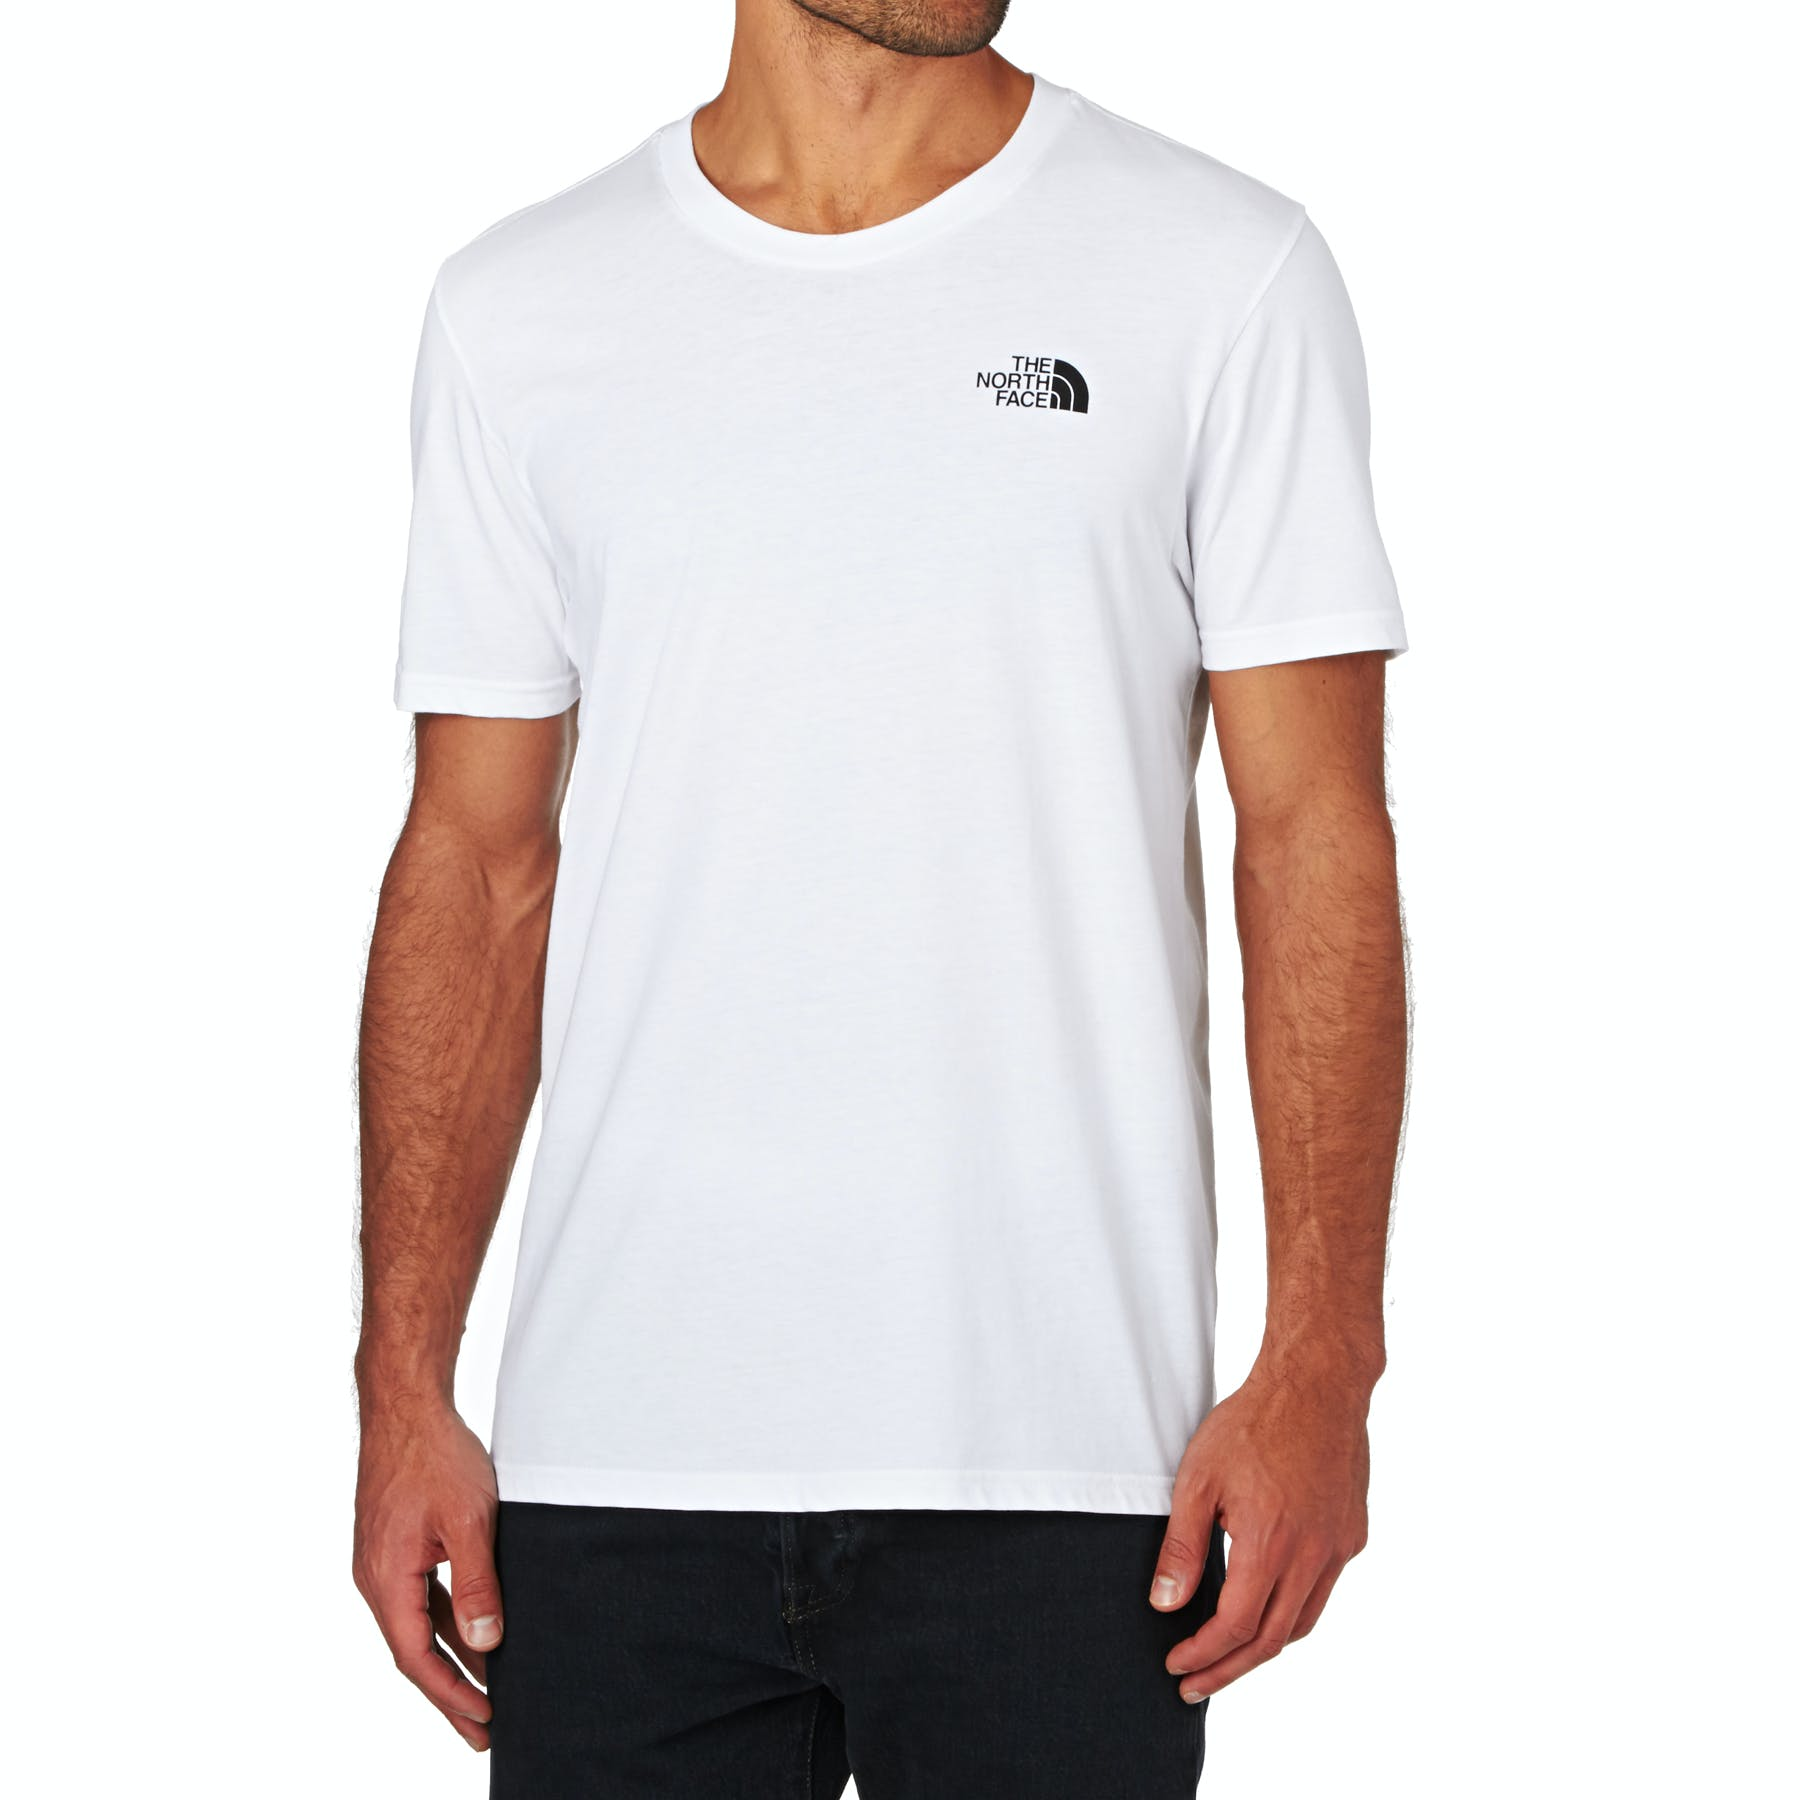 9dee7d8a1 North Face Simple Dome Short Sleeve T-Shirt - Free Delivery options on All  Orders from Surfdome UK